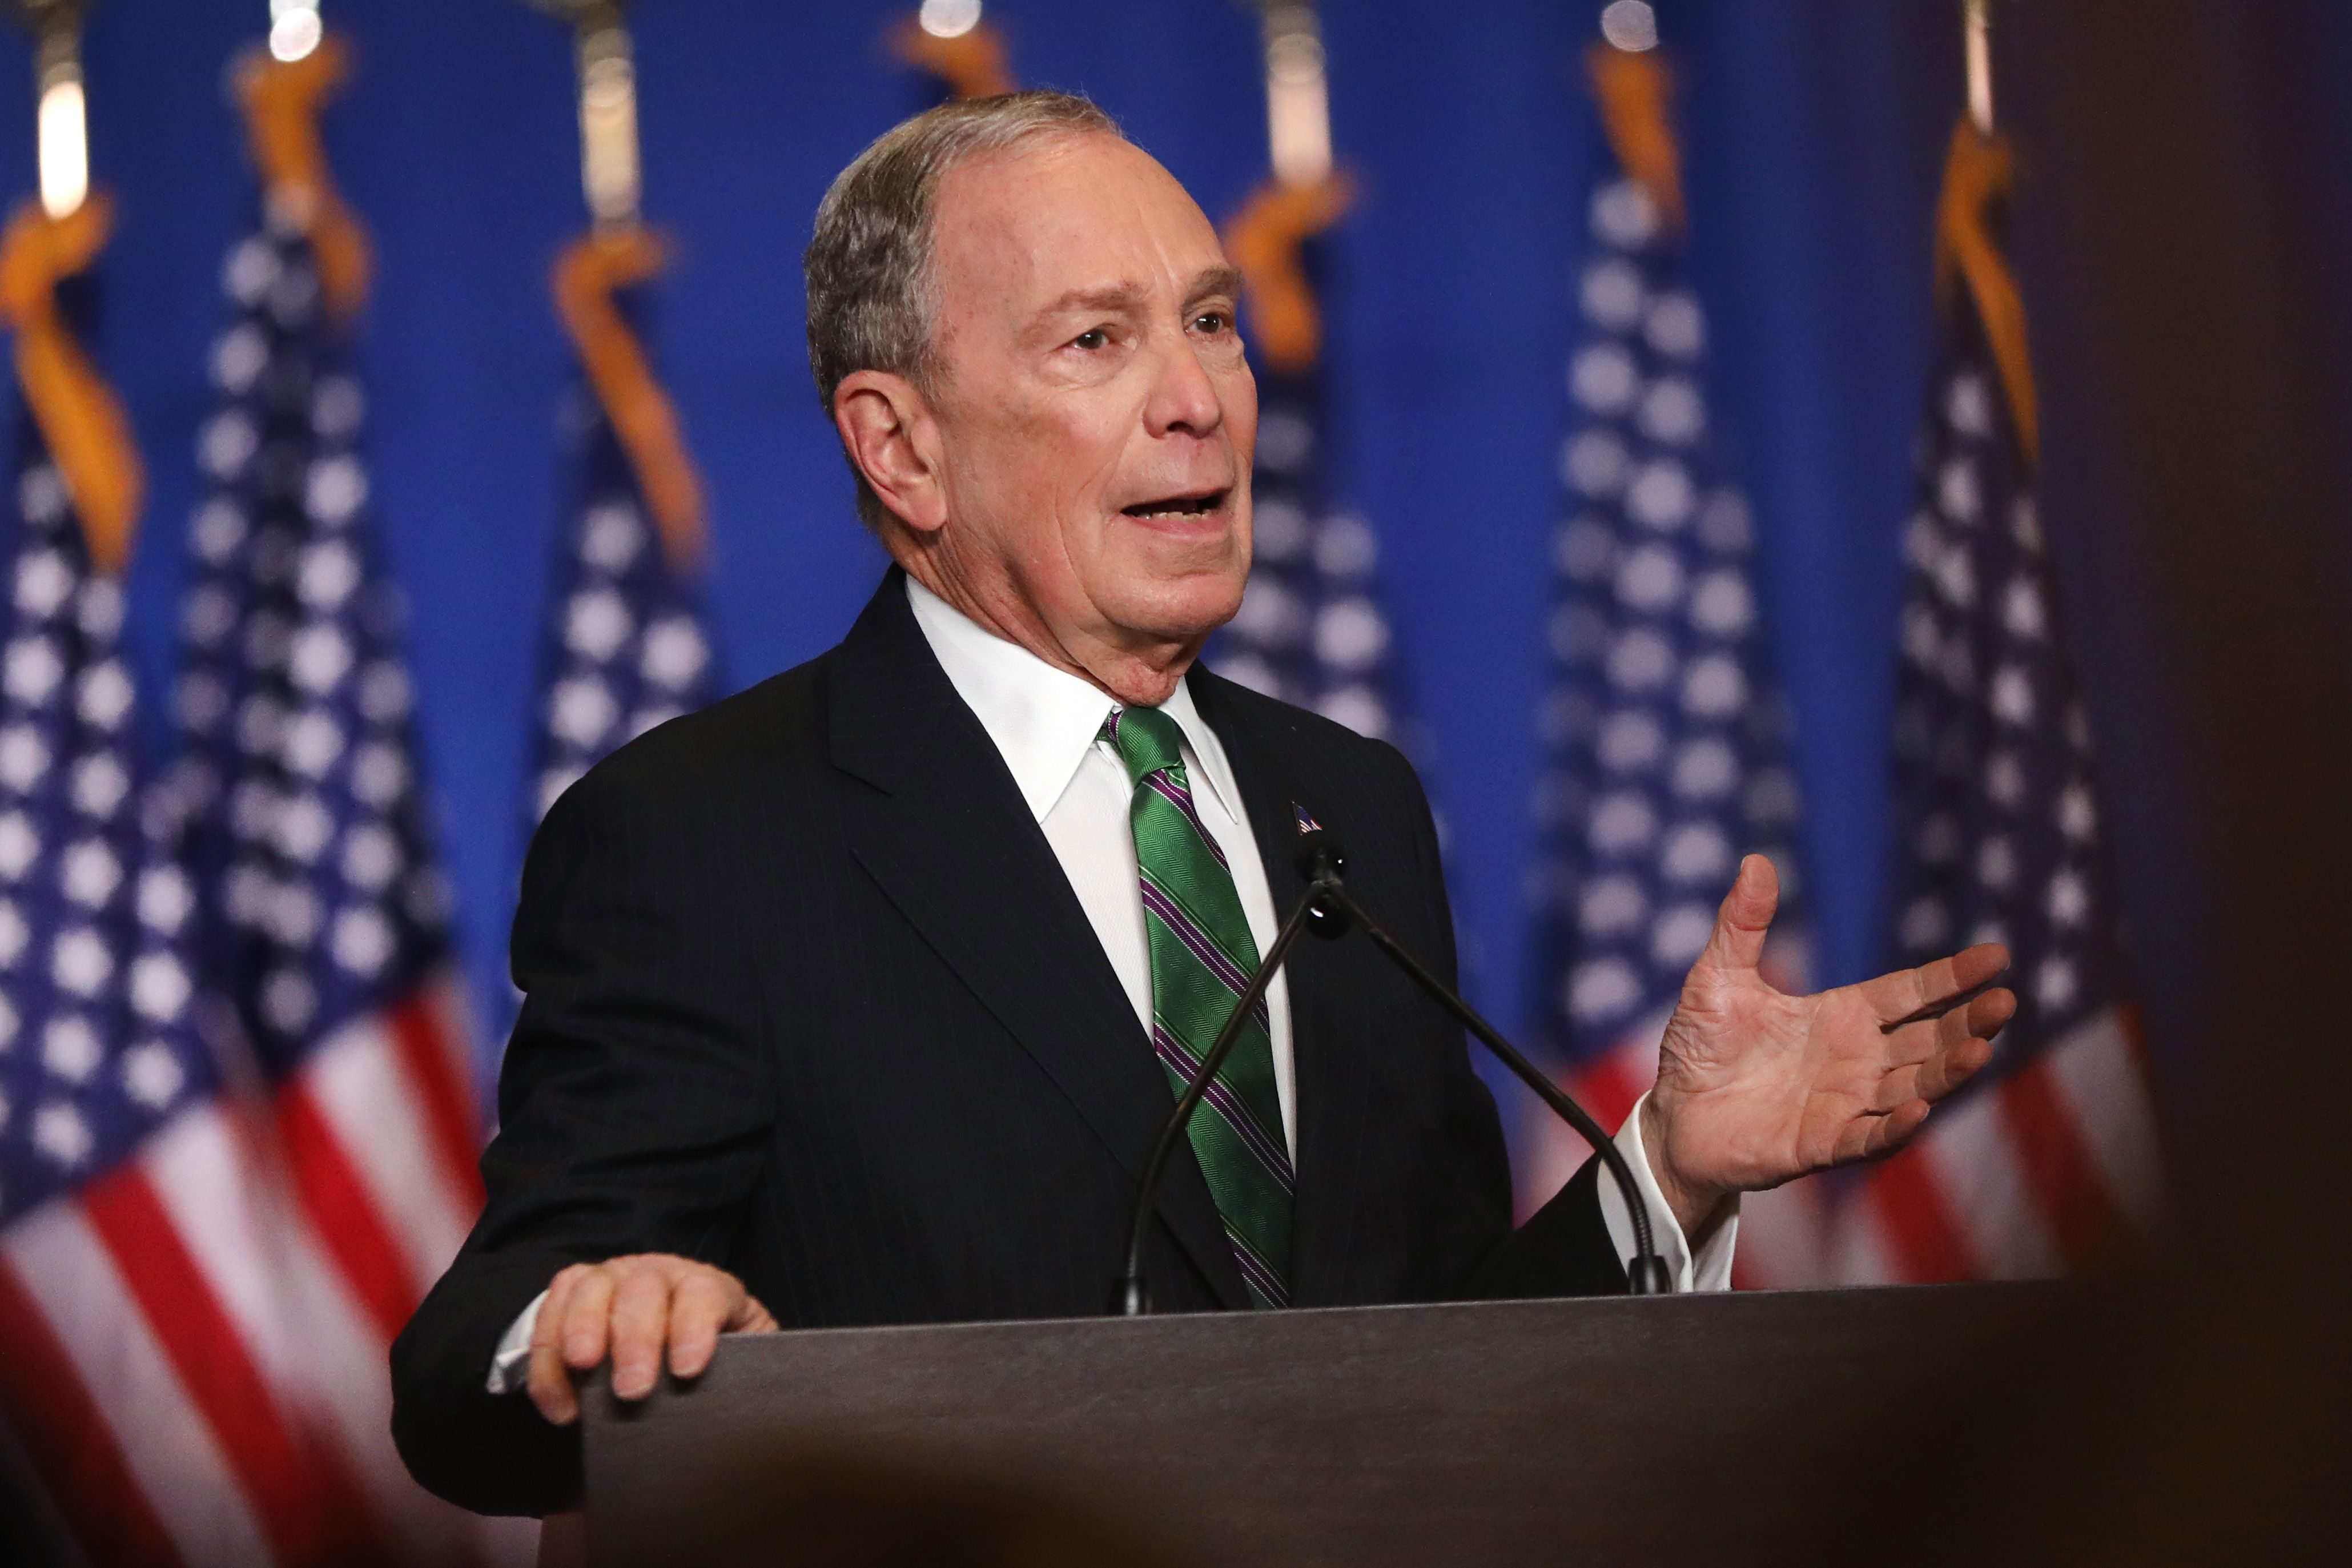 Fired Bloomberg staffers file class-action lawsuit over stiffed pay